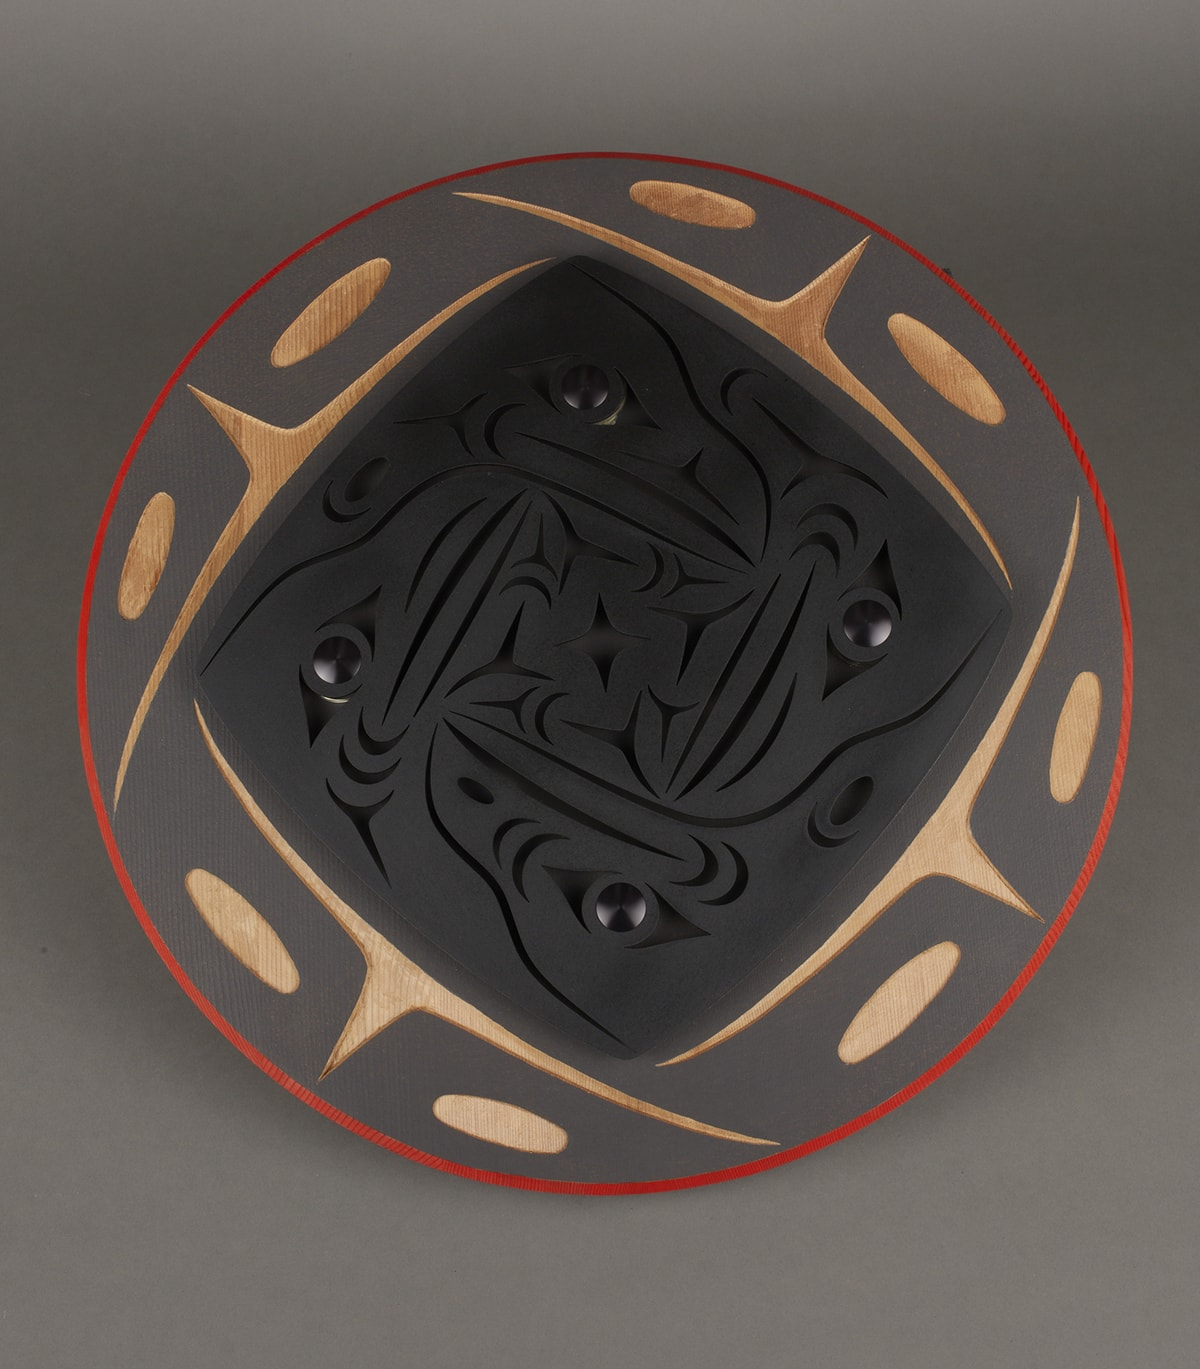 Circling Ravens II. Shaun Peterson. 2014. Pigment and Cor-Ten steel on red cedar. 2 in x 22 in diameter. Round wooden circle with a bright red edge, a strip of flat gray with carving revealing the natural cedar color. The pattern of a beak with two oval eyes as seen from a front-facing perspective is repeated four times around the circle. Inside is a flat black square with rounded edges with four crow heads carved into the black with shiny black marbles as eyes. The raven heads are viewed from a side perspective and have intricate carvings revealing eyes, beak, face feathers, and a neck. A smaller square in the middle of the ravens is filled with repeated patterns that resemble crow footprints and a four point star in the middle.